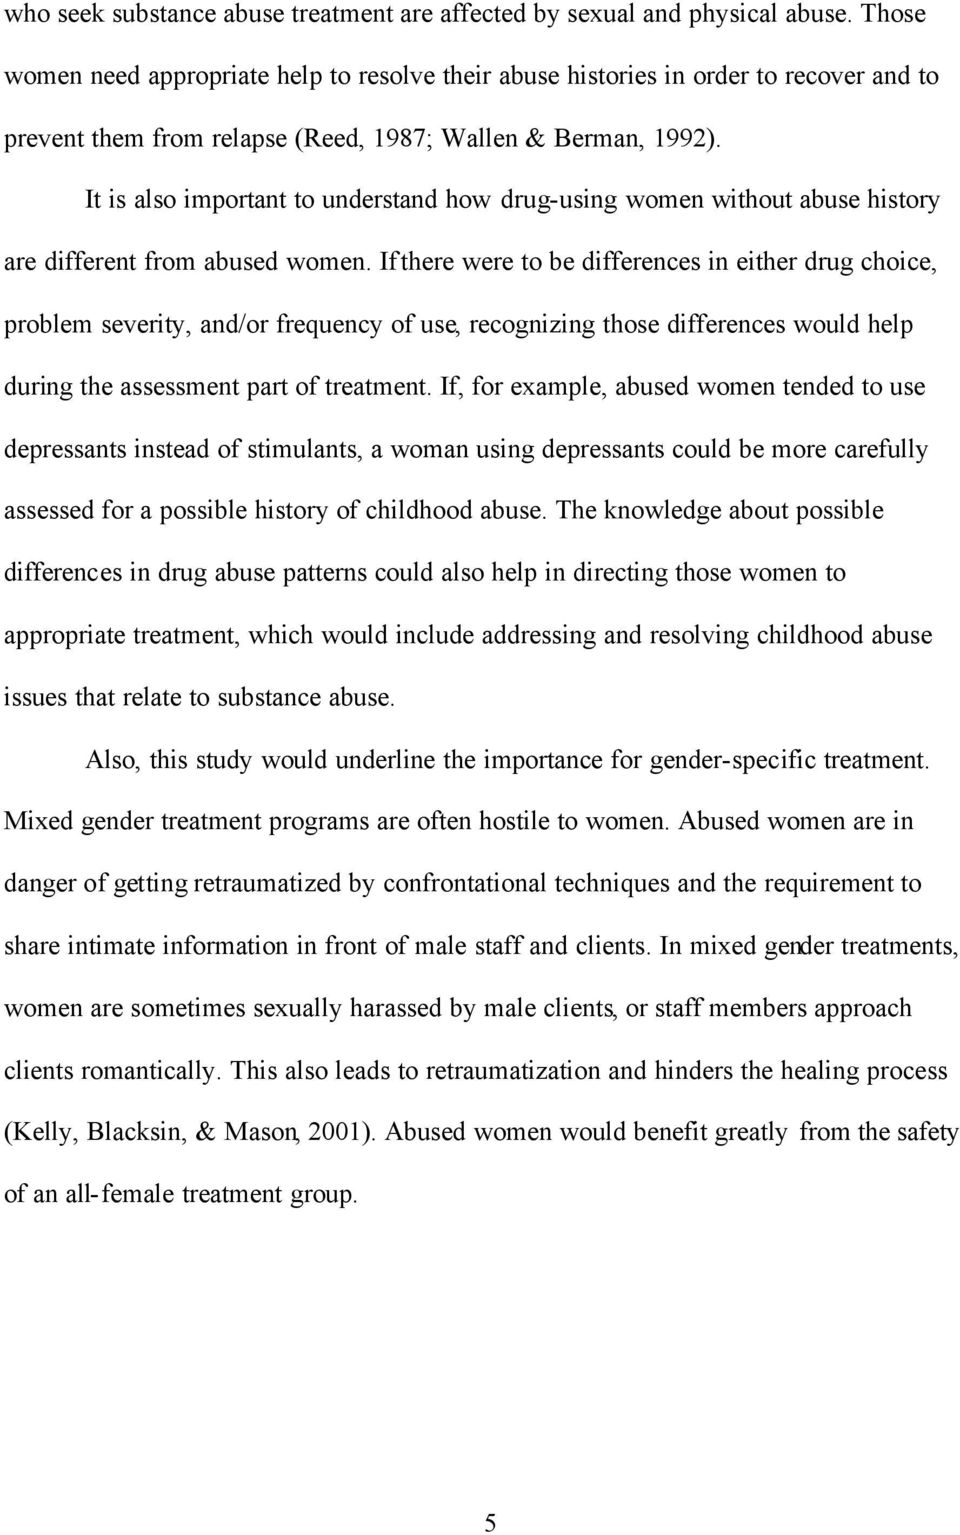 It is also important to understand how drug-using women without abuse history are different from abused women.